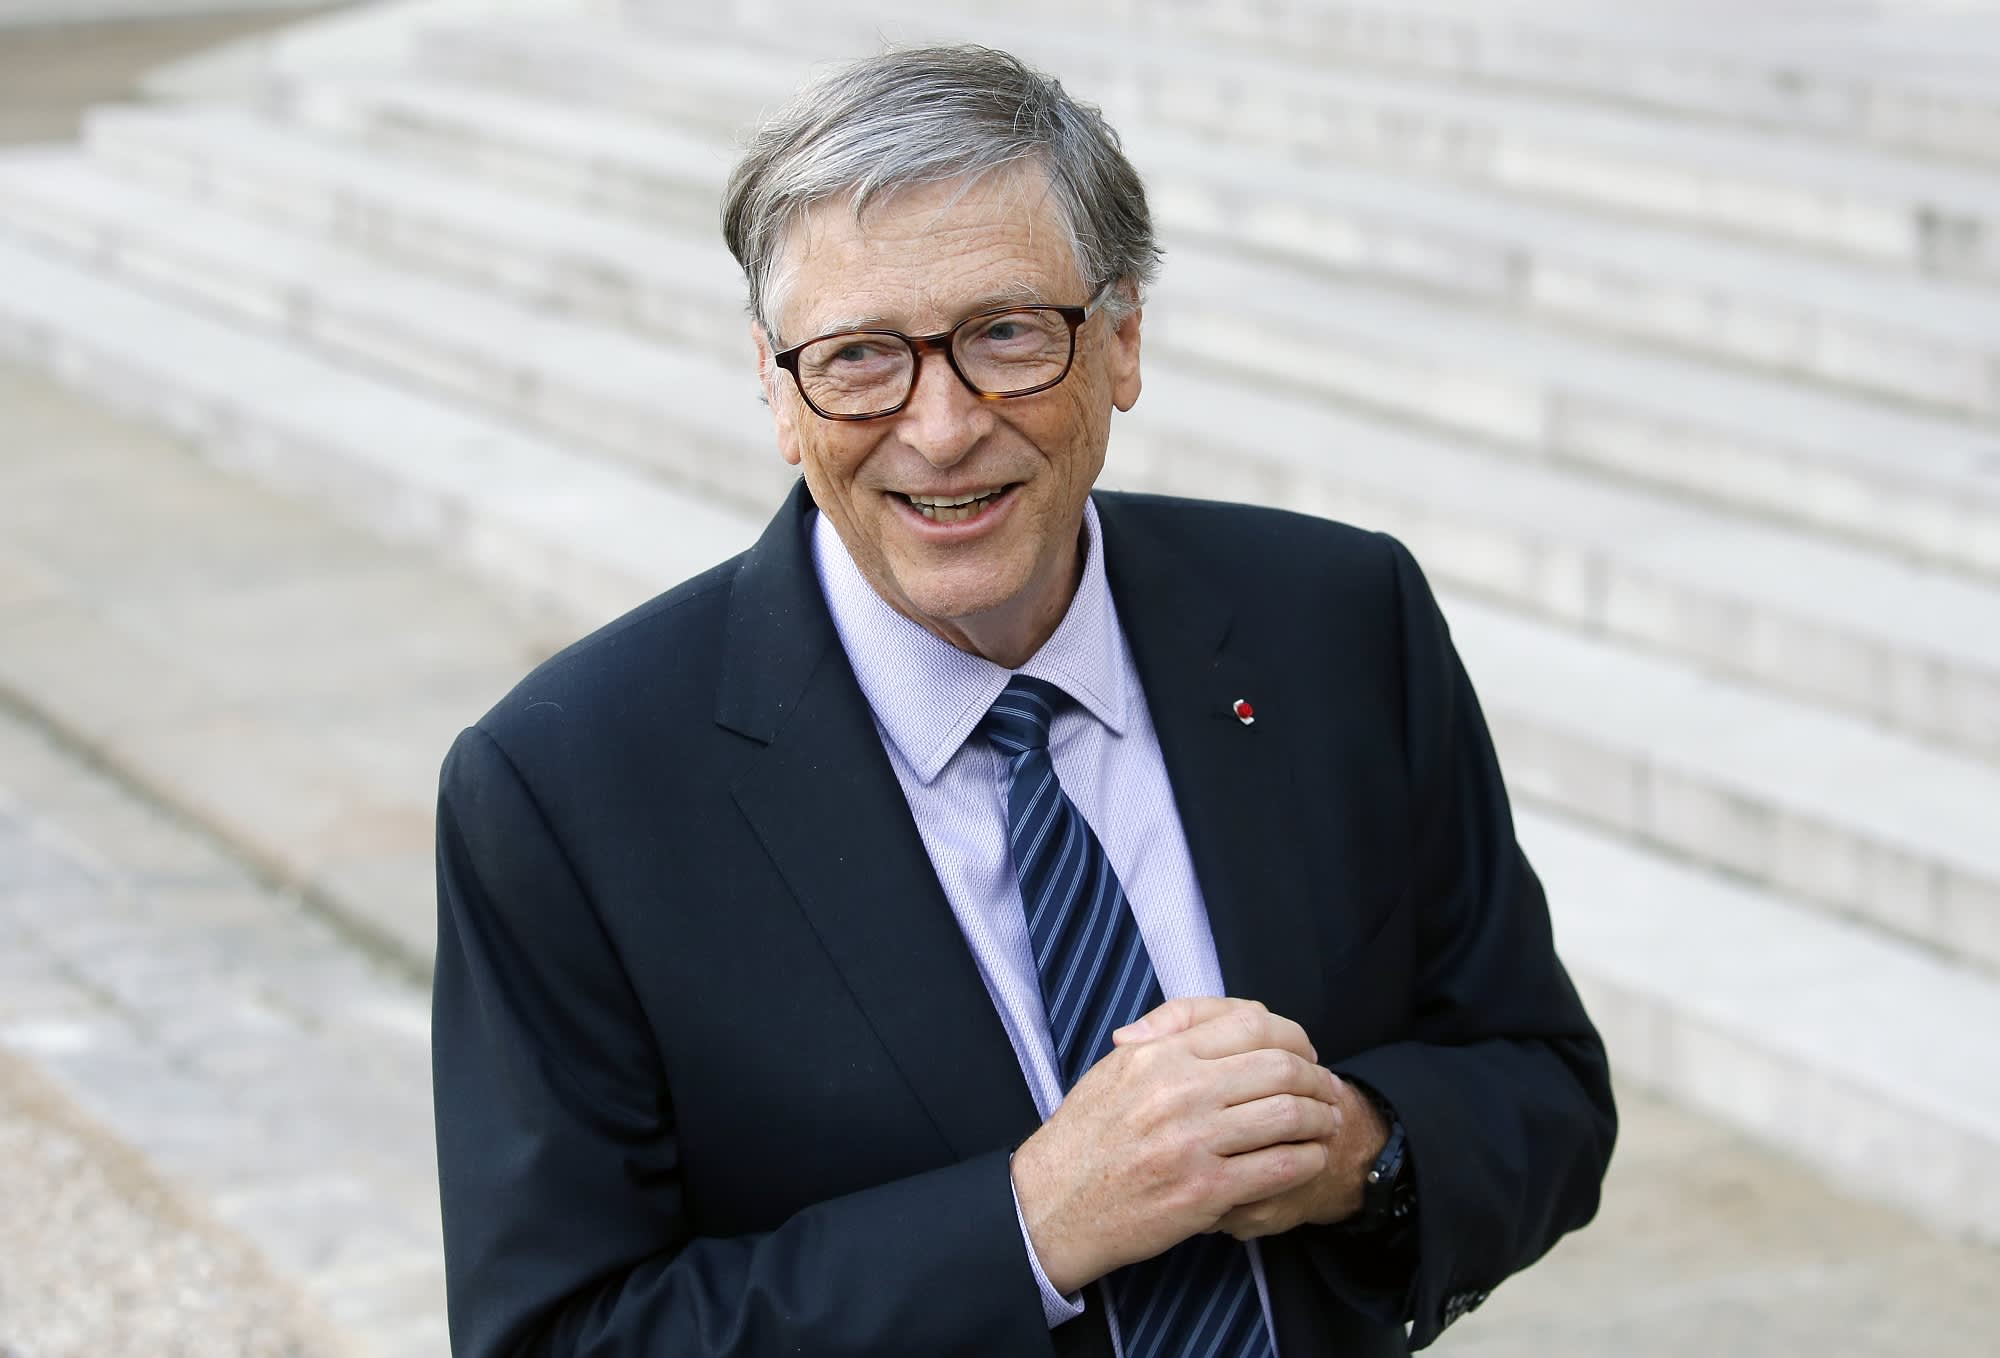 Bill Gates gave away $35 billion this year but didn't see his personal net worth drop